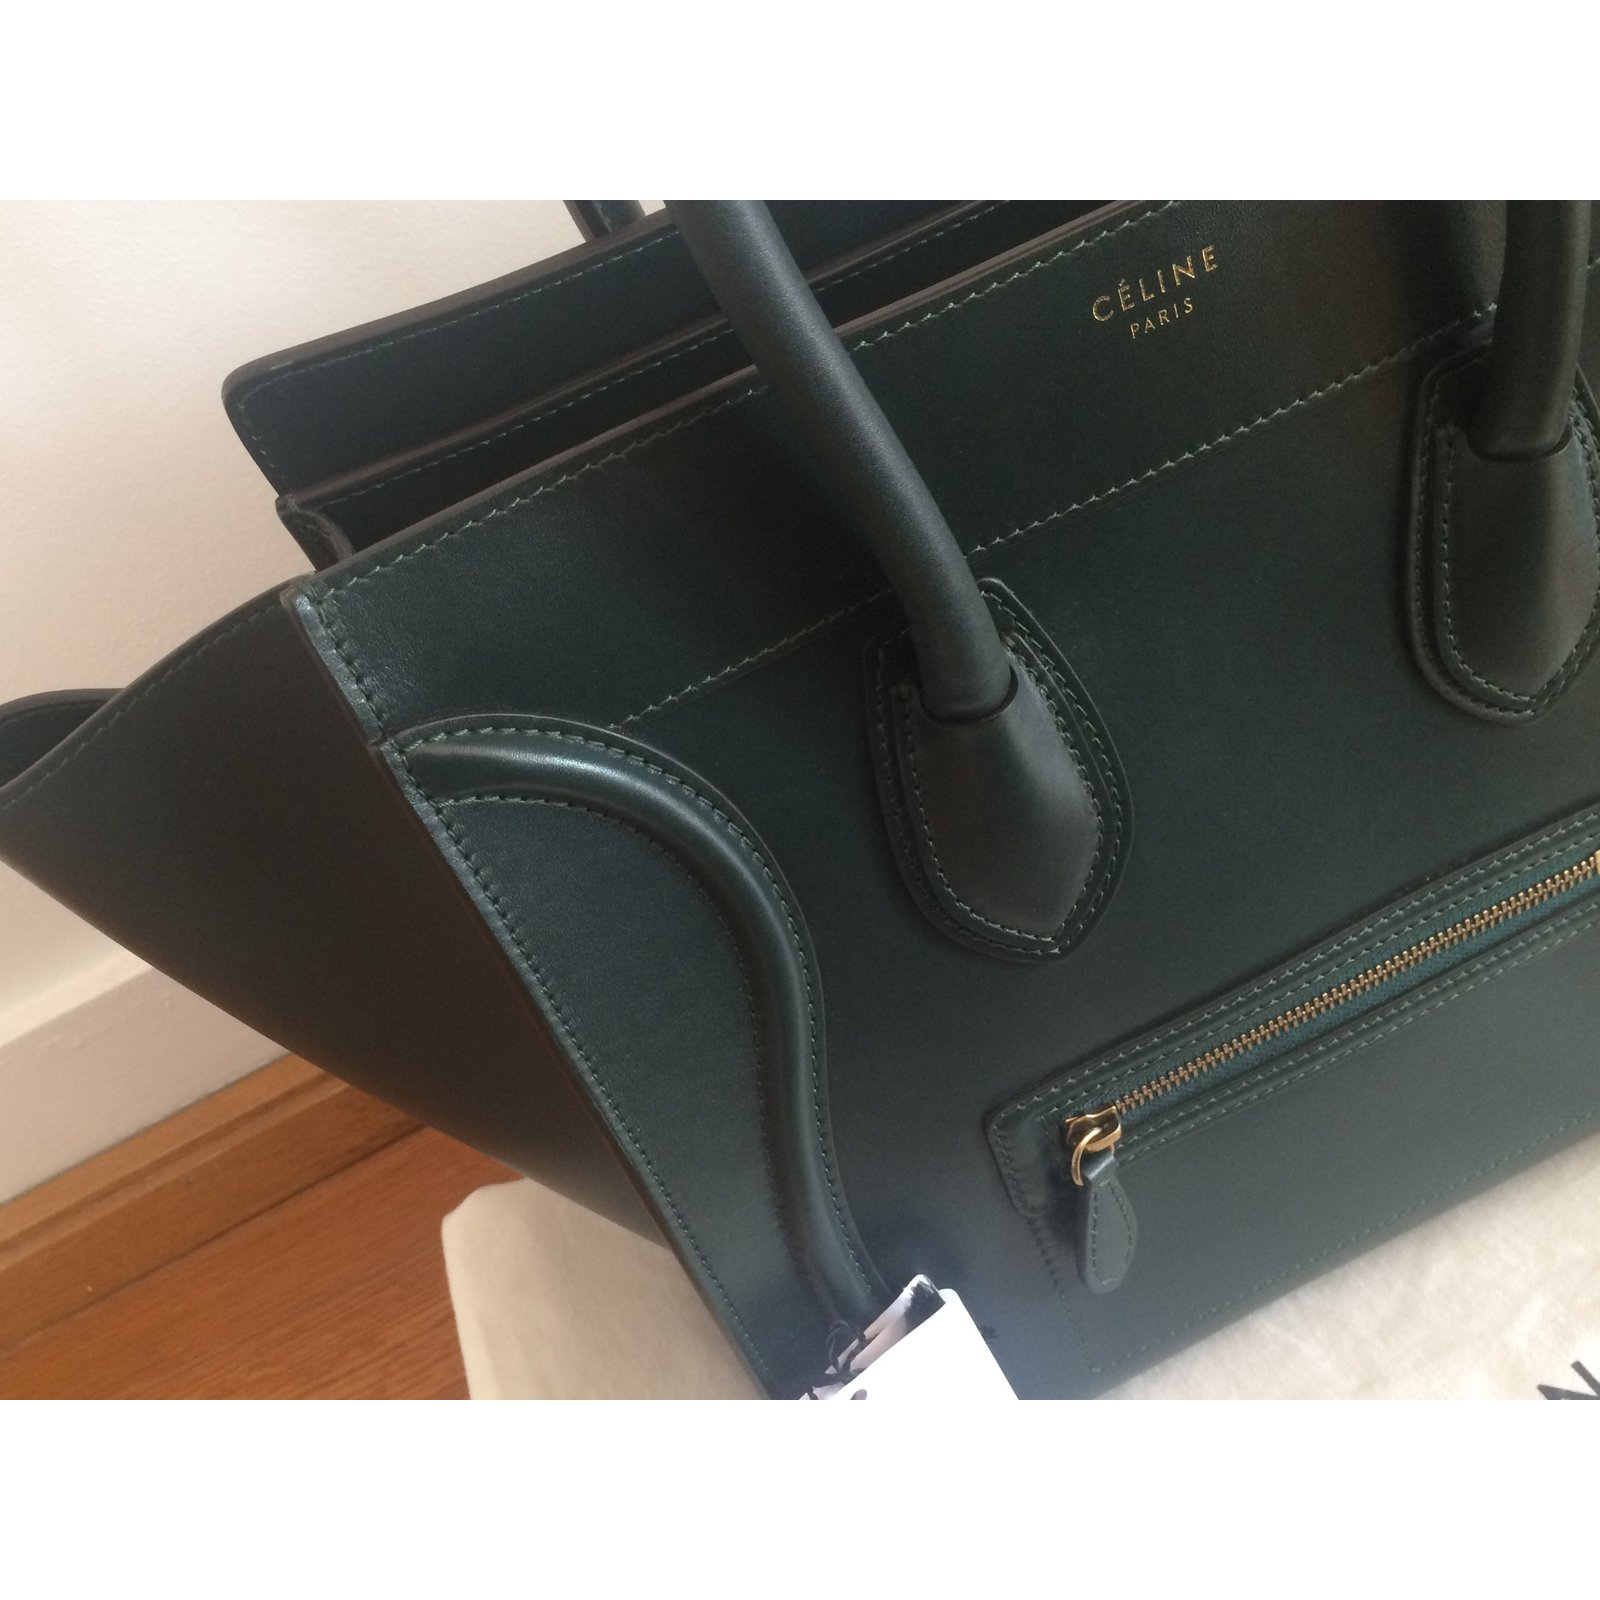 ff3dacf038a2 Céline Luggage Mini Handbags Pony-style calfskin Green ref.64753 - Joli  Closet